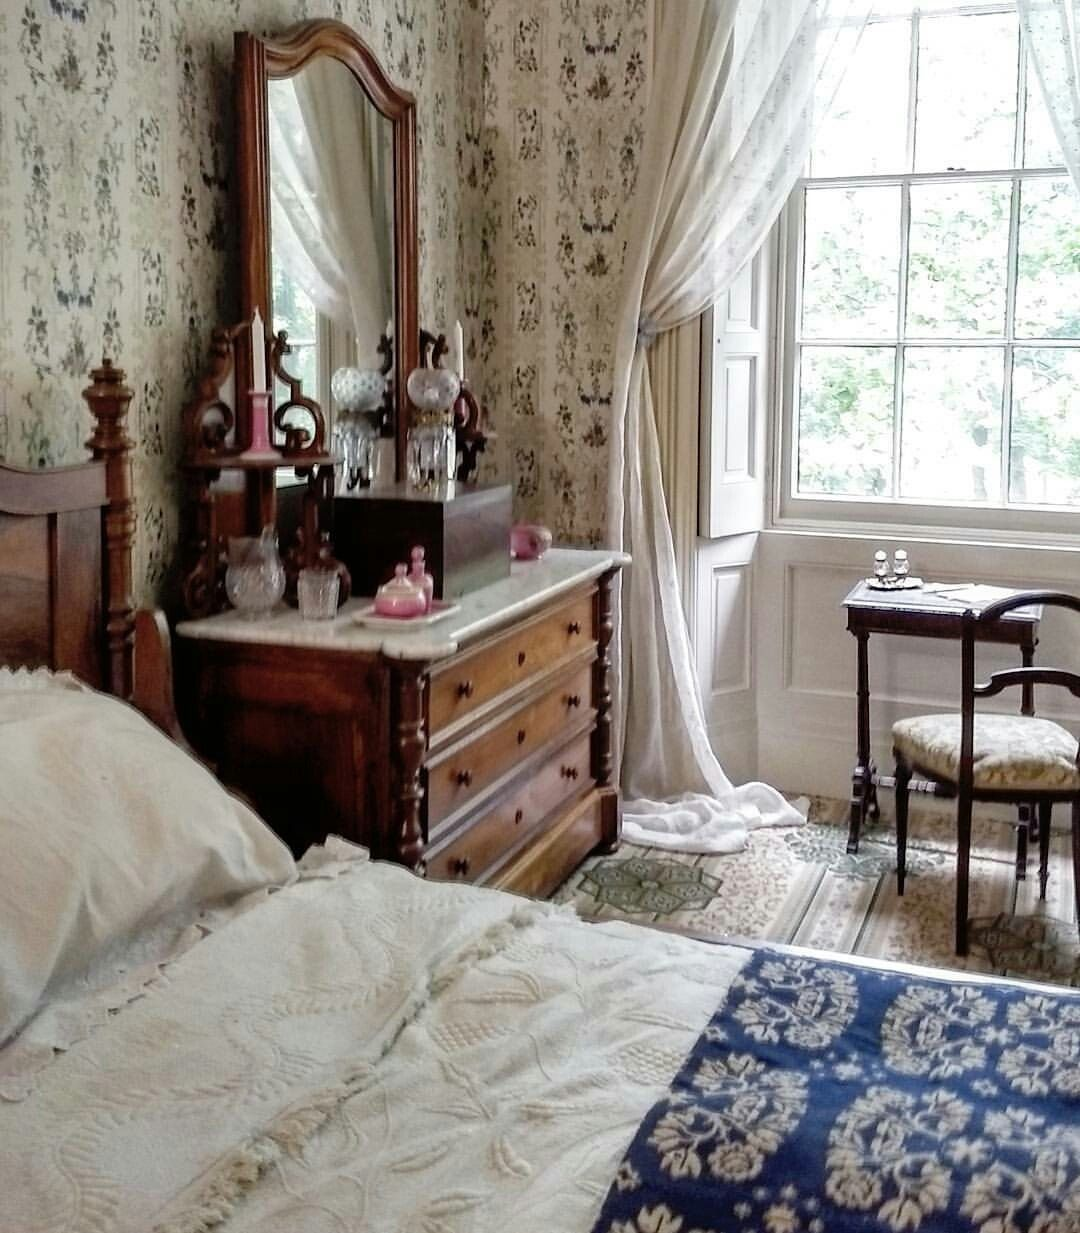 Cozy Country Home Feeling Homedecor Style Interior Bedroom